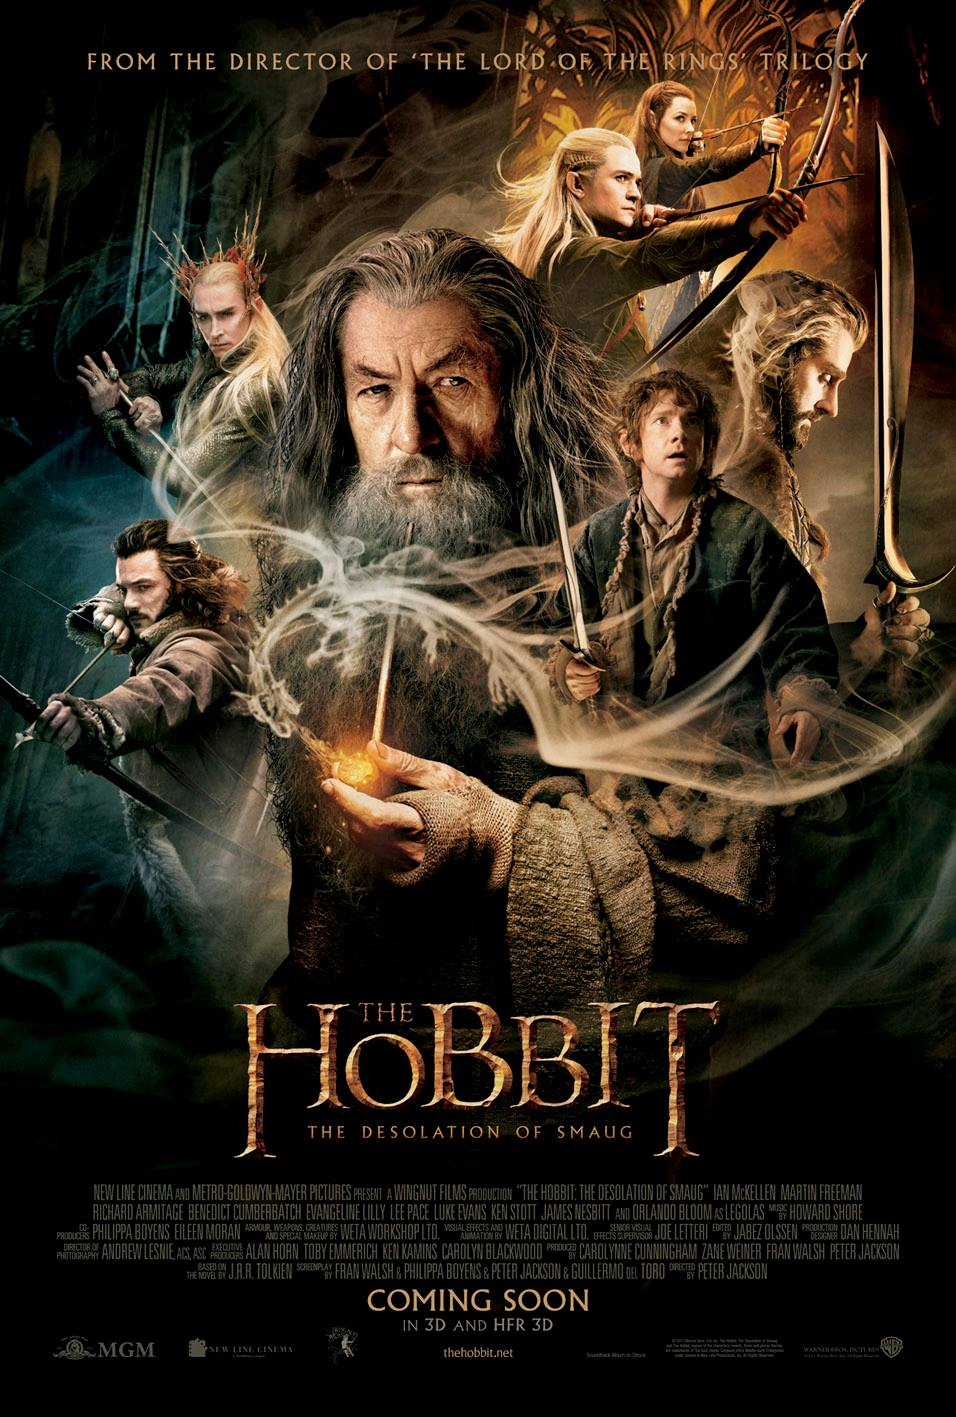 The Hobbit The Desolation of Smaug New poster